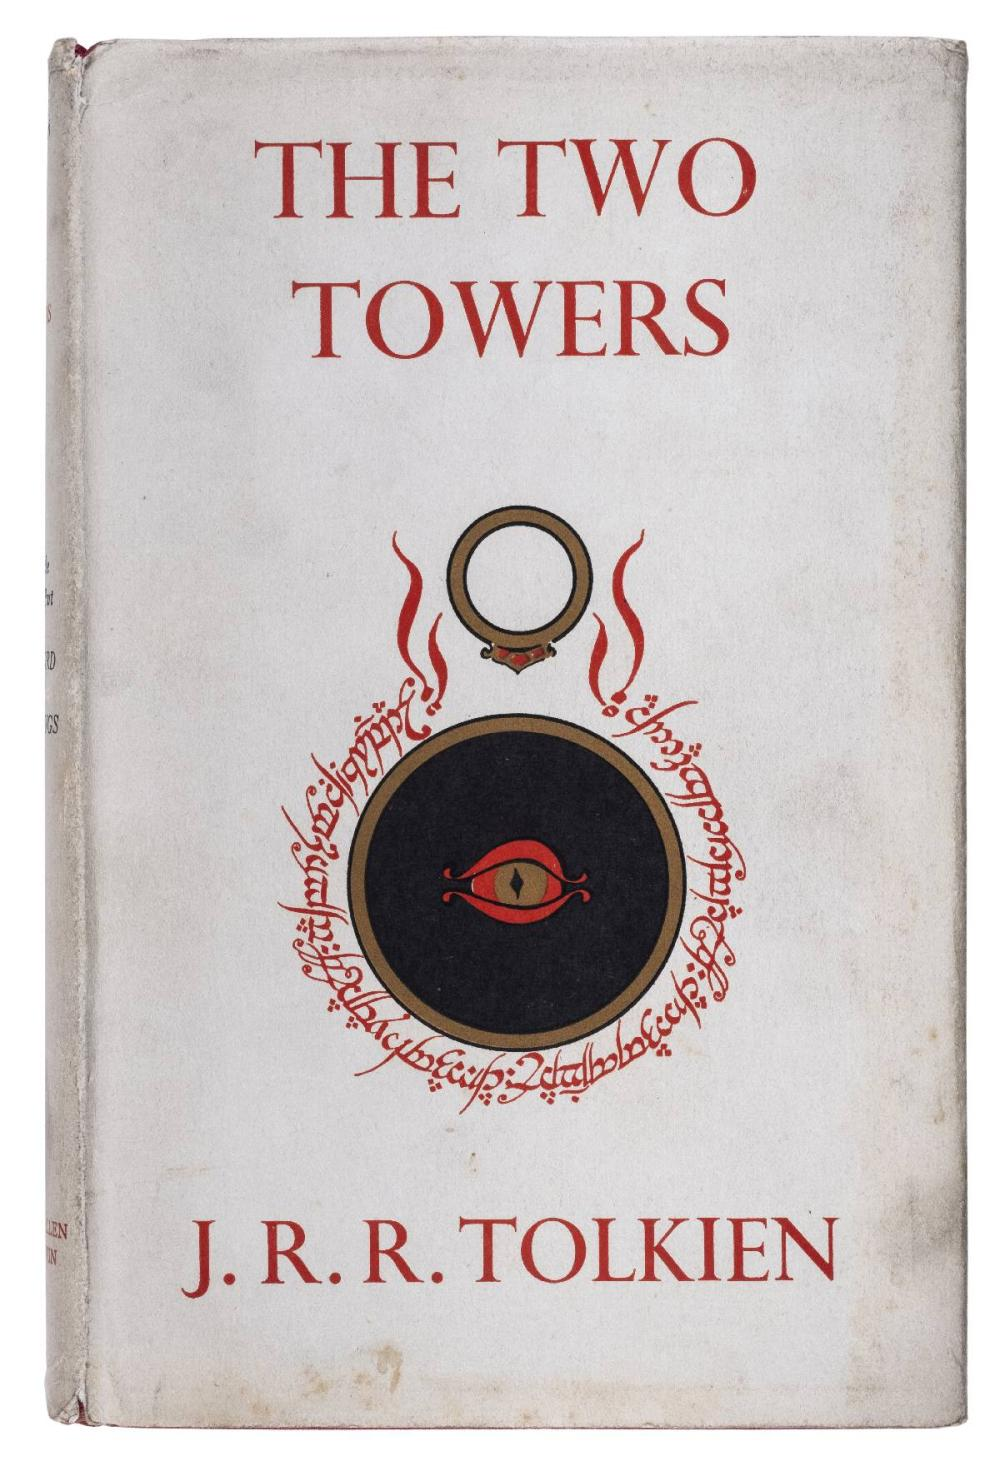 The Two Towers (novel)